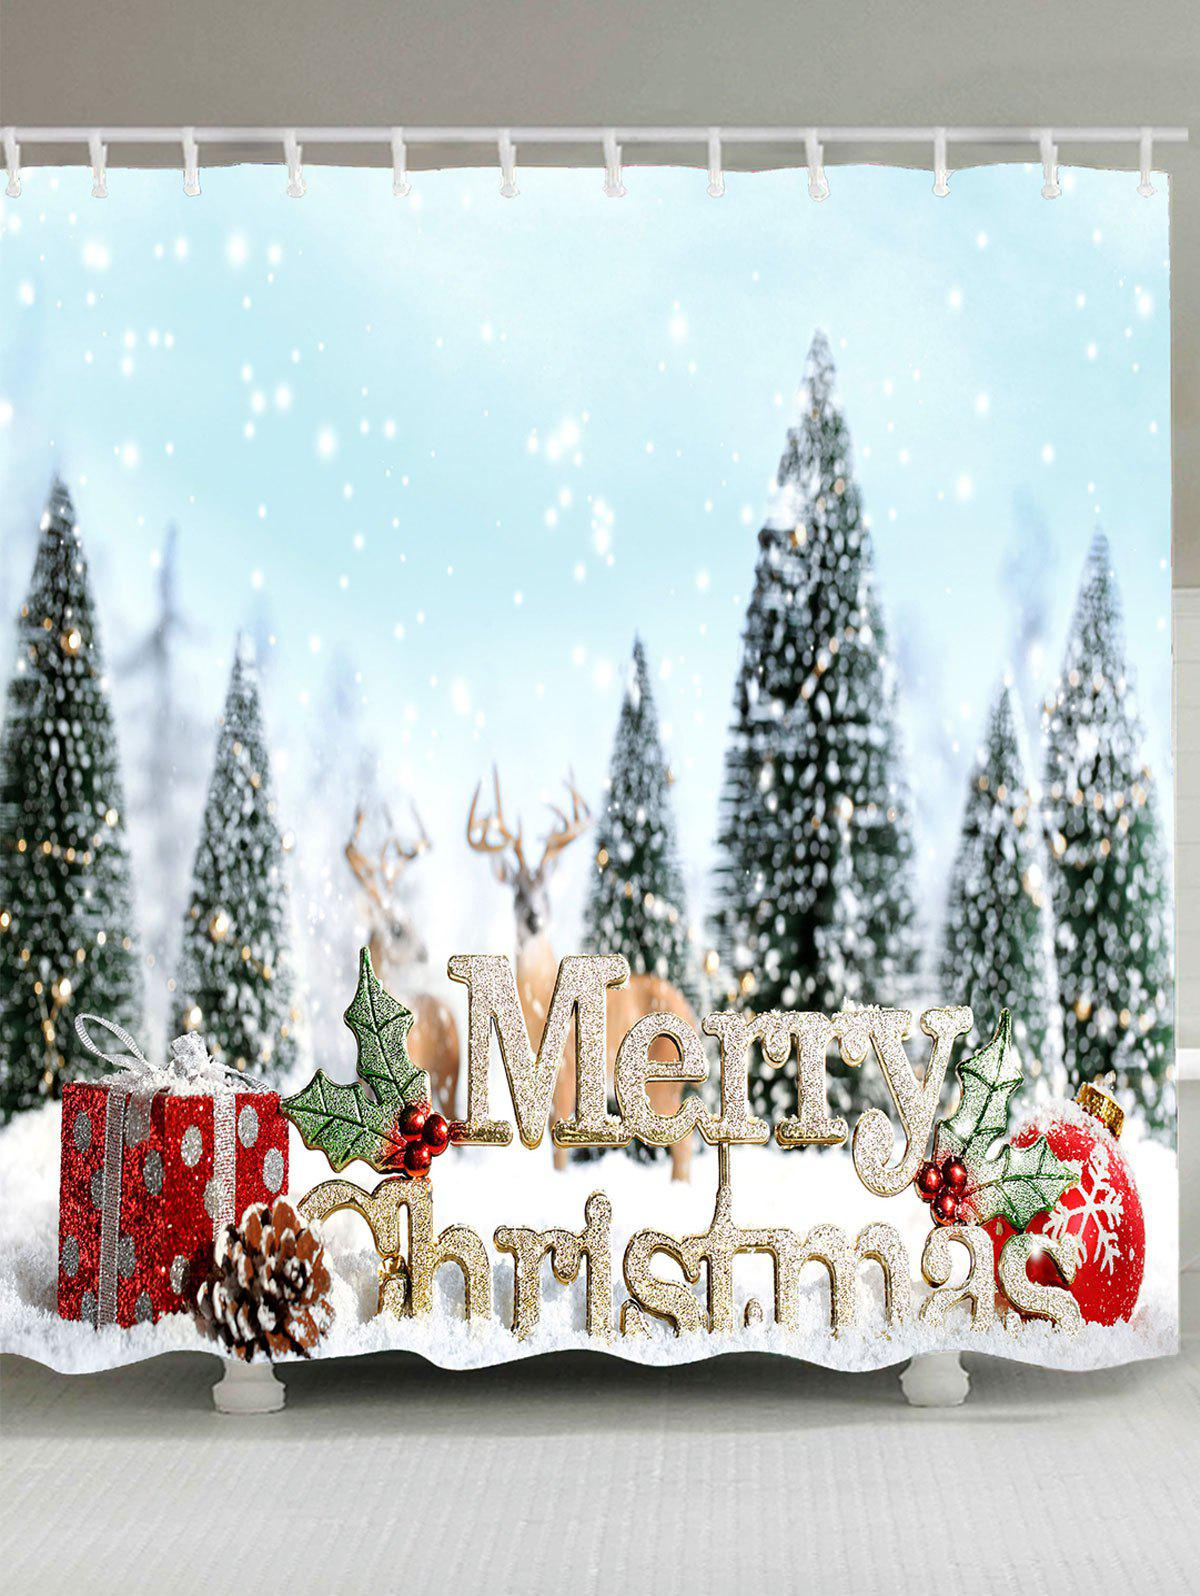 Snowy Christmas Trees Balls Gifts Printed Shower Curtain - CLOUDY W71 INCH * L79 INCH